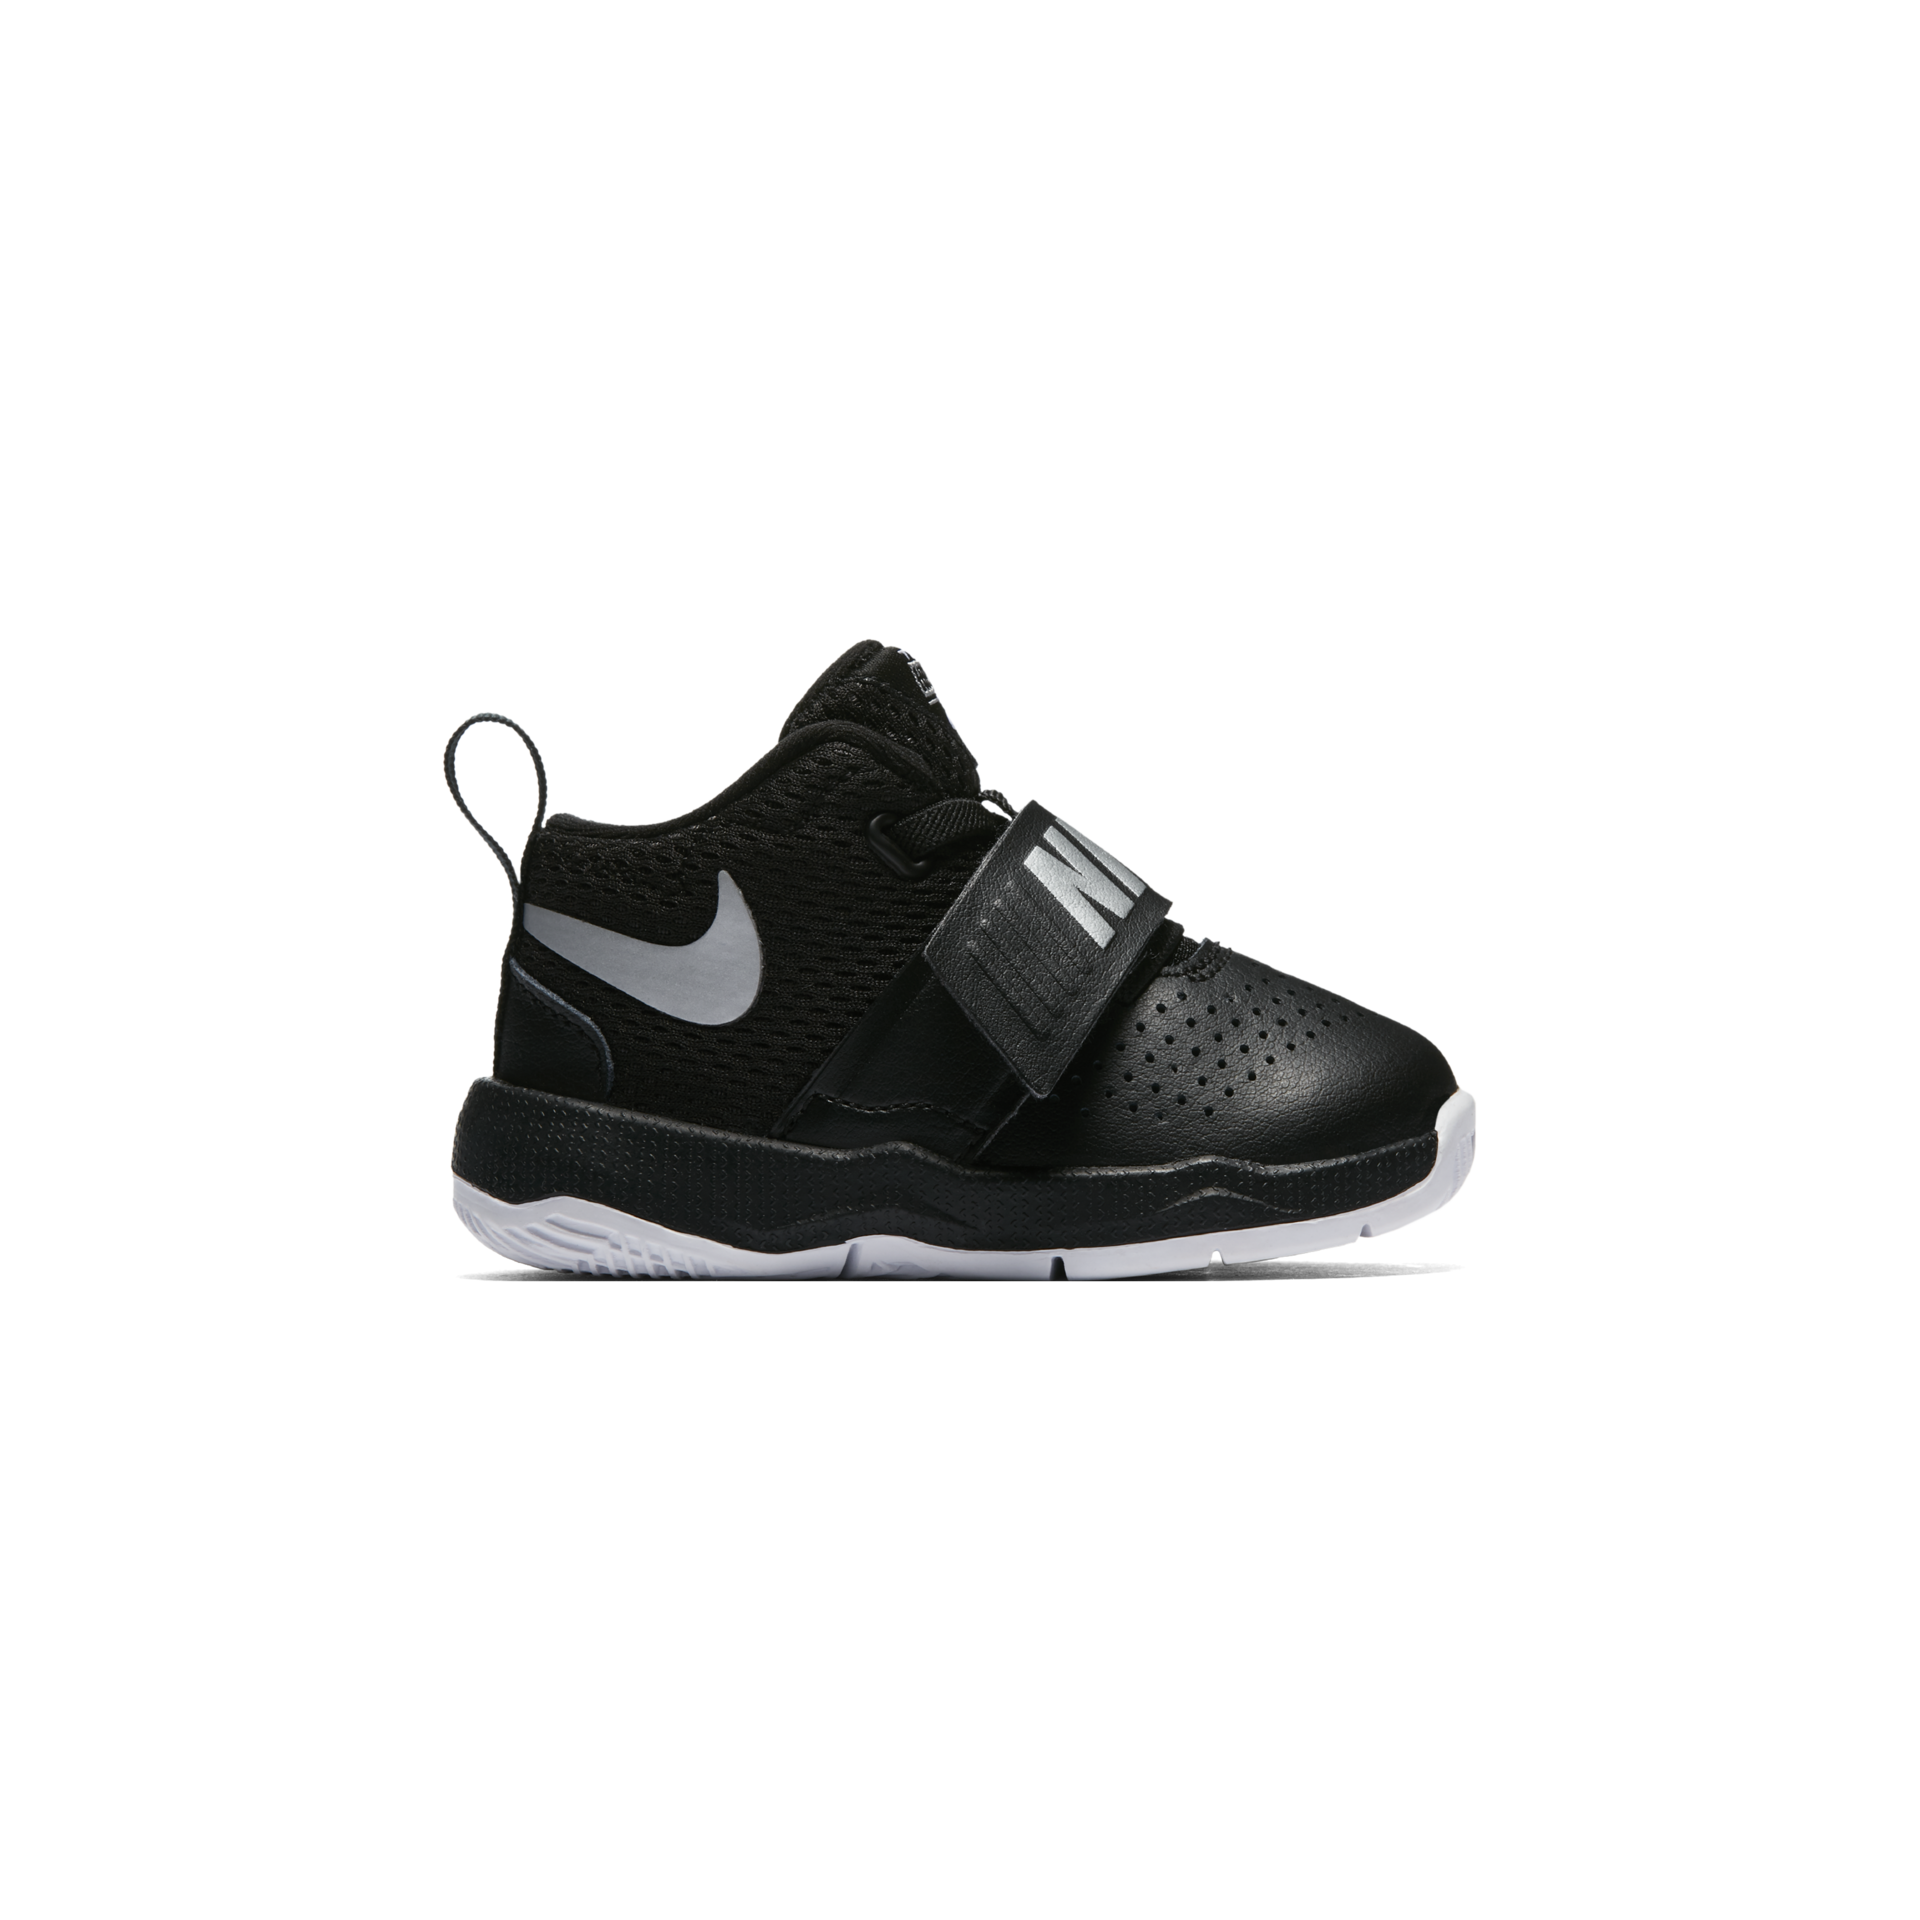 new product 37a7e 6a331 NIKE TEAM HUSTLE D 8 TD ( TODDLER ) INFANTS